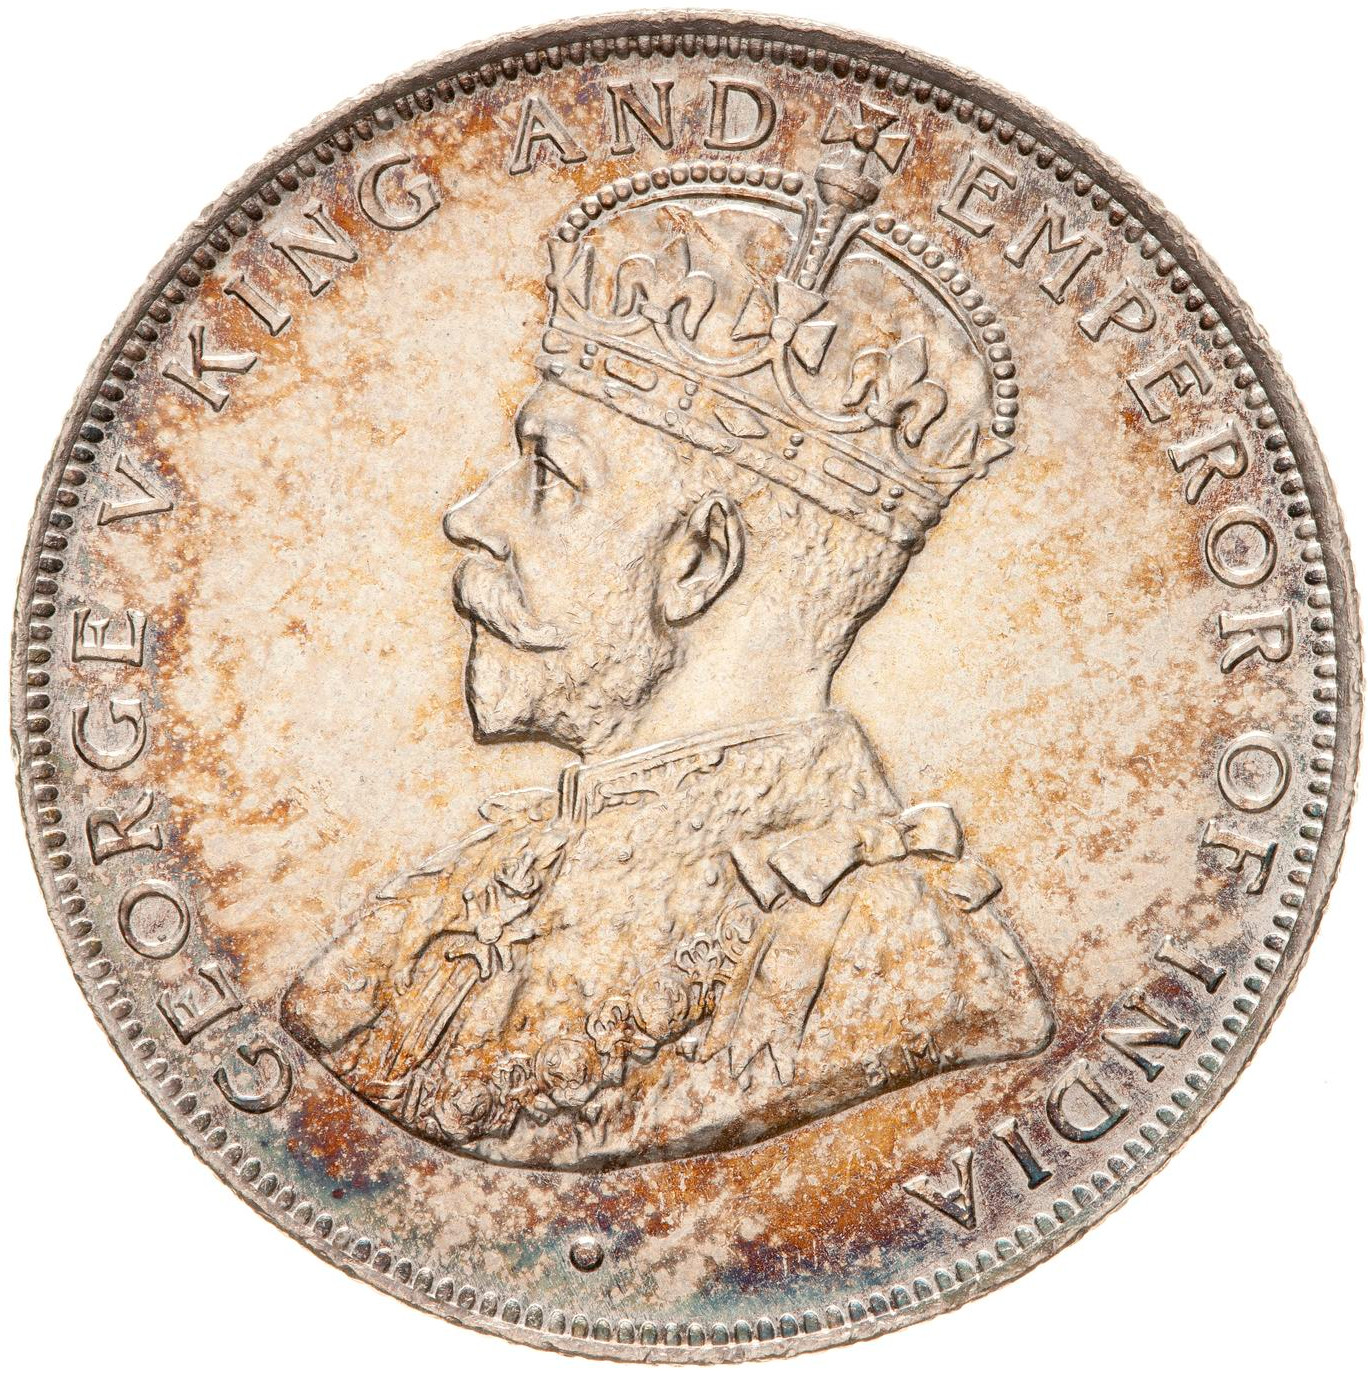 Fifty Cents (Silver): Photo Coin - 50 Cents, British Honduras (Belize), 1911